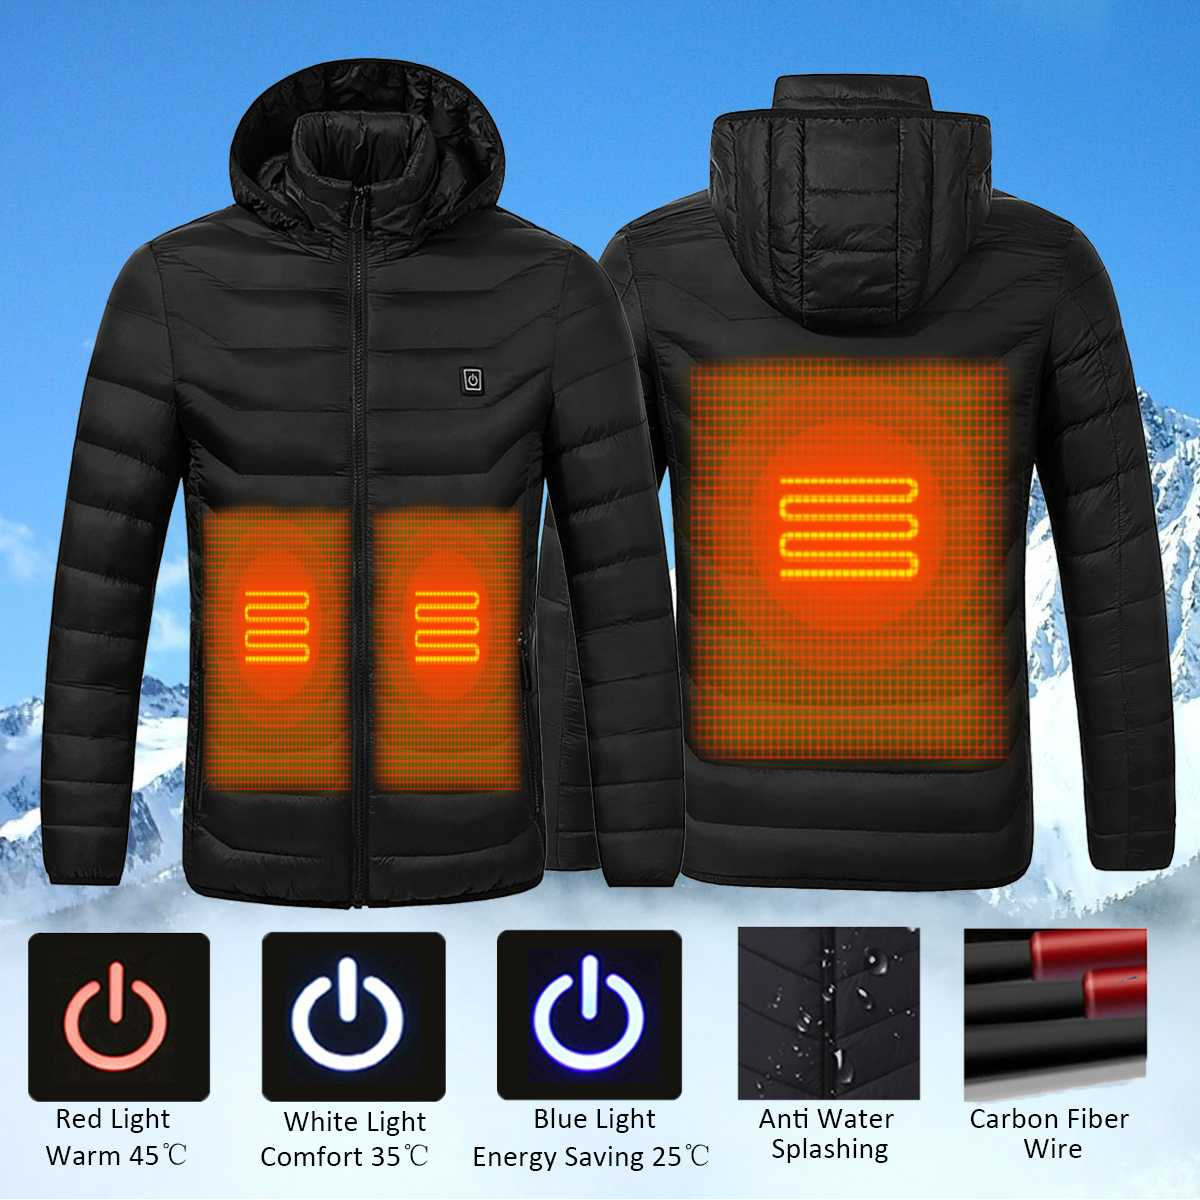 NEW Universal Winter Electric Heating Hooded Coat Jacket Temperature Control USB Abdomen Back Intelligent Safety Vest Clothing(China)